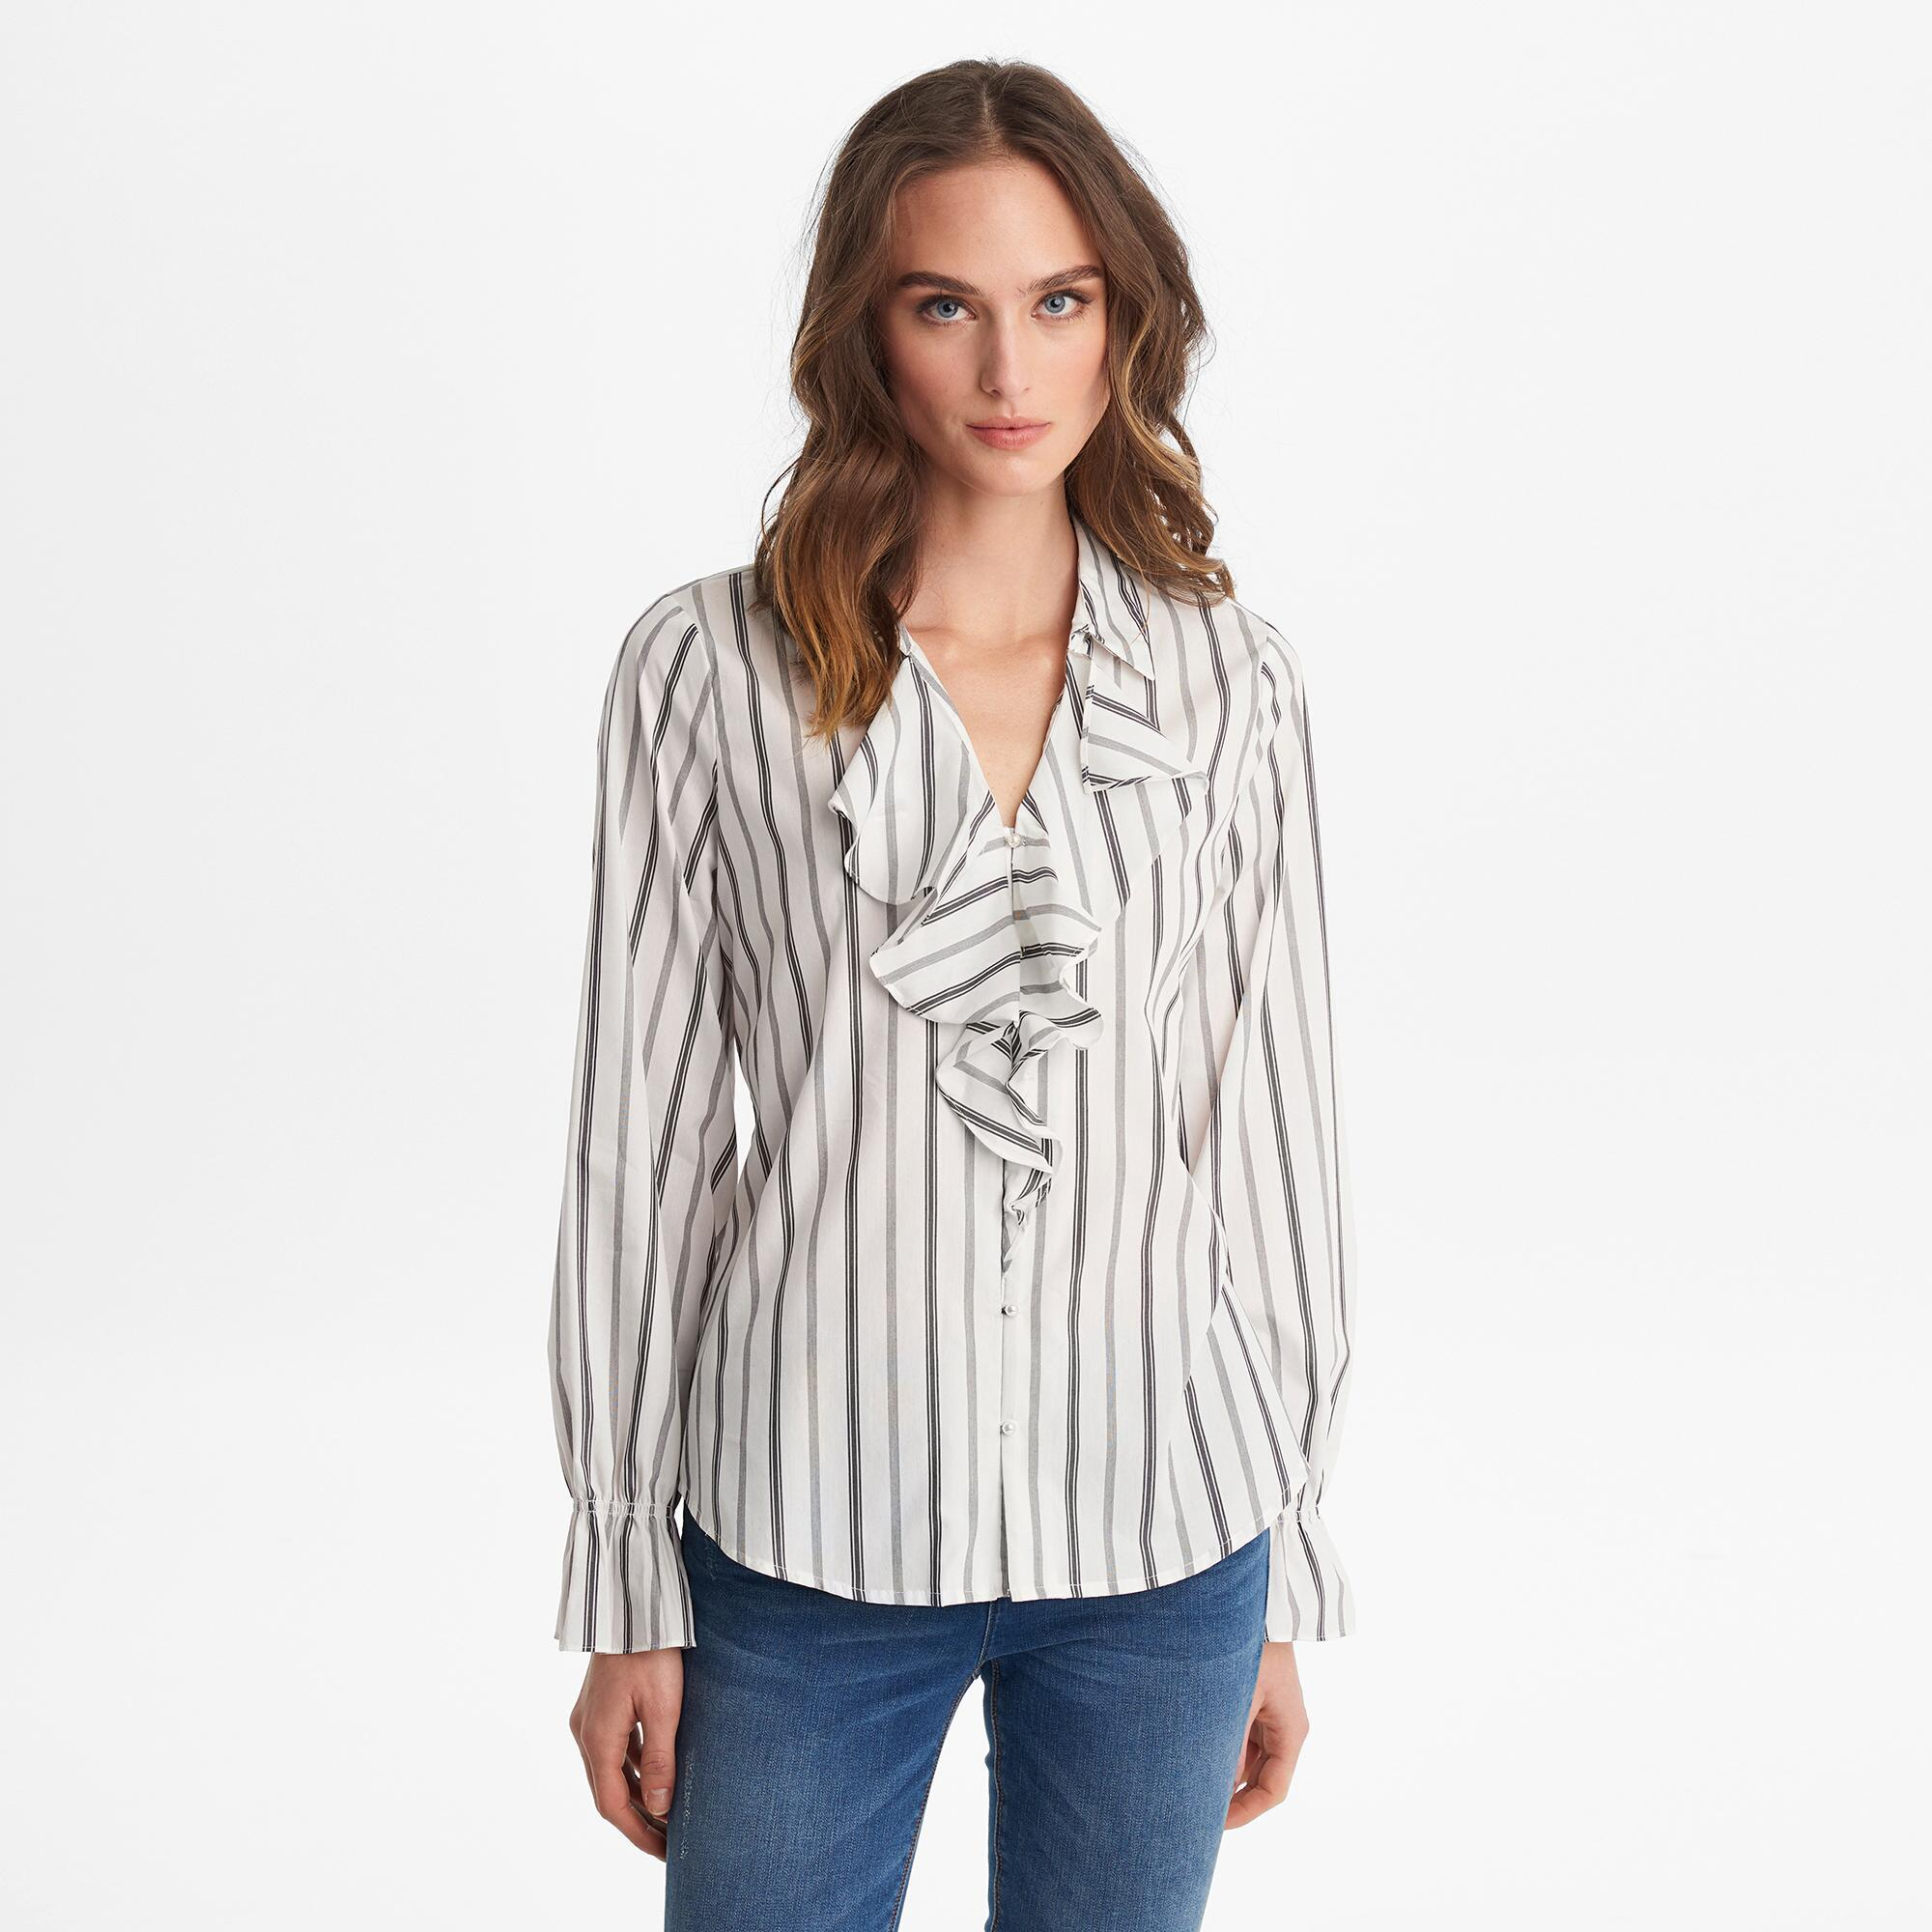 a364c4e97f9aa7 Lyst - Karl Lagerfeld Striped Ruffle Front Blouse Top in White